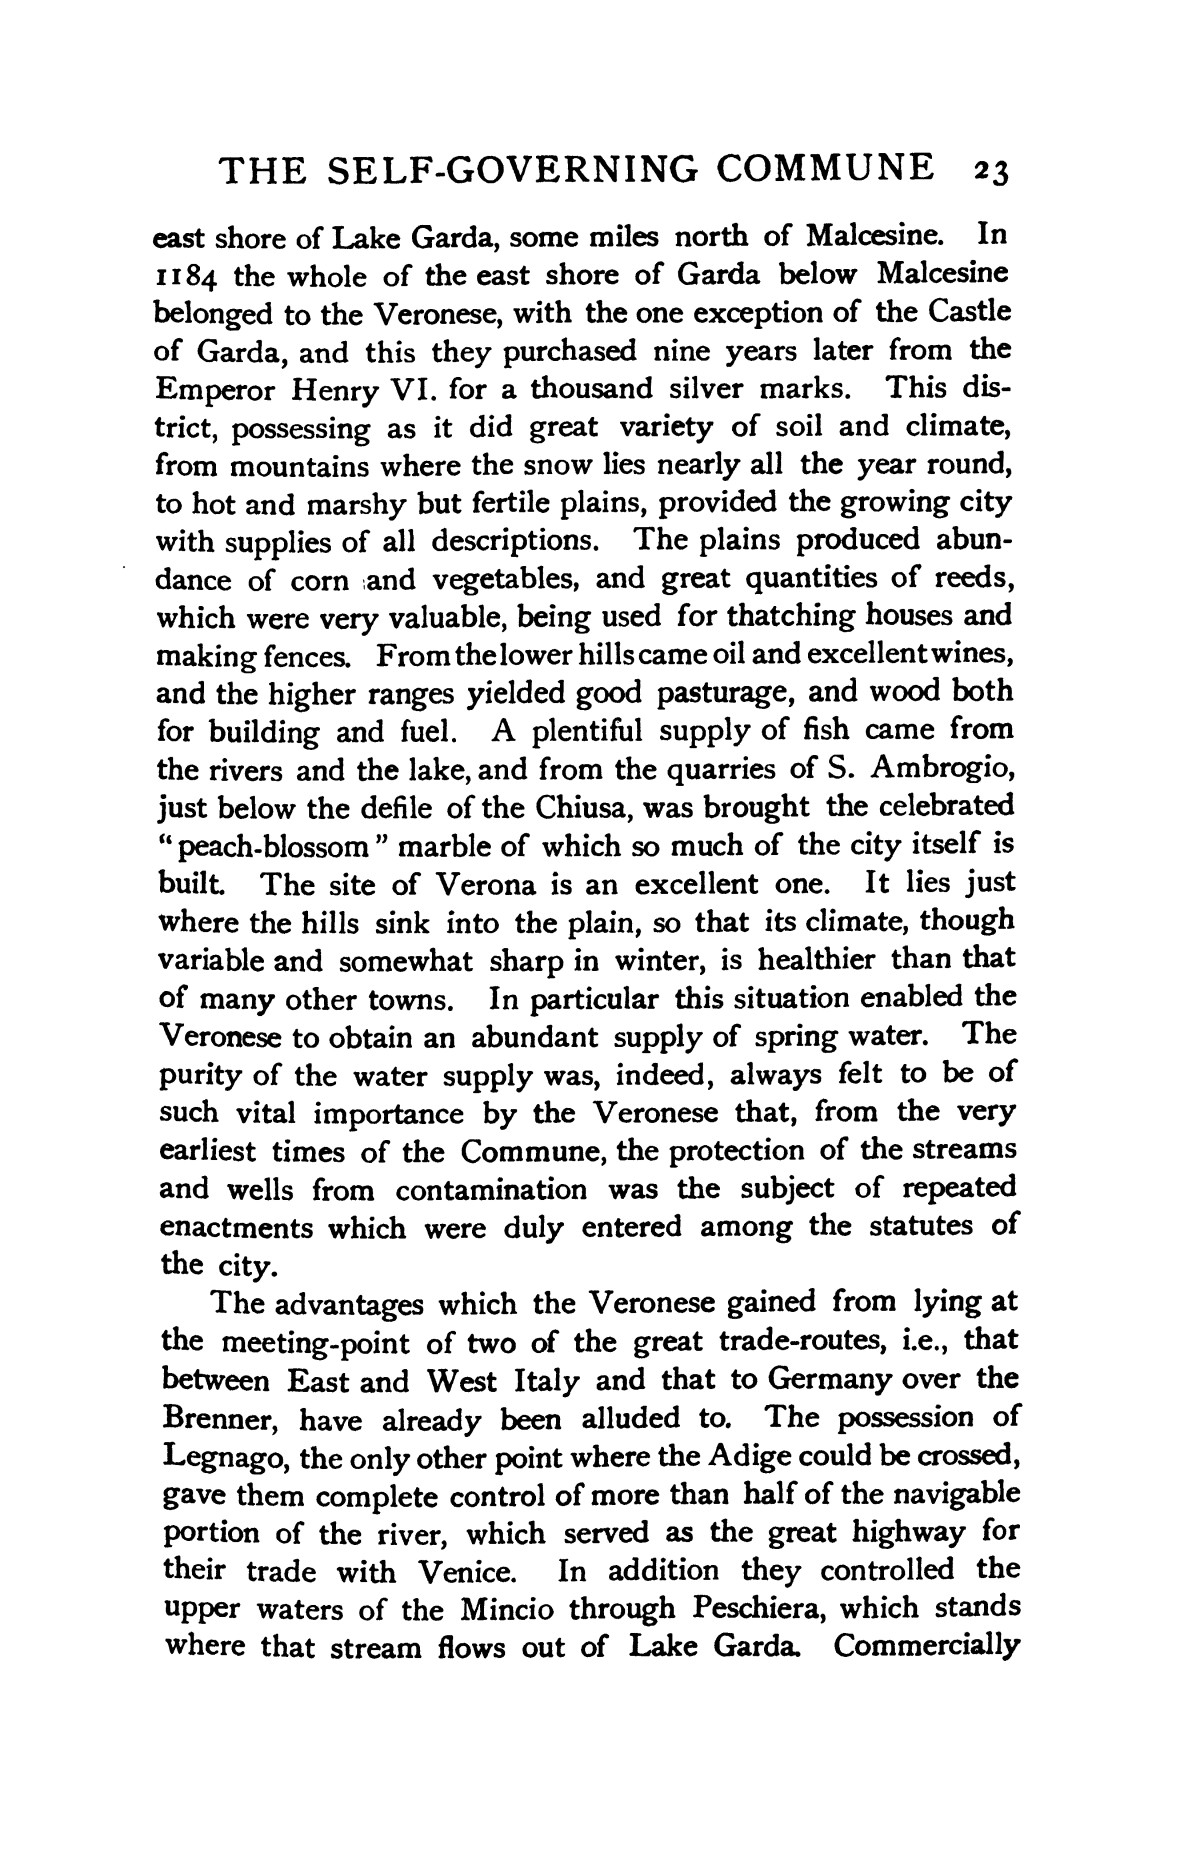 A history of Verona, by A. M. Allen.  Edited by Edward Armstrong, with twenty illustrations and three maps.                                                                                                      [Sequence #]: 40 of 493